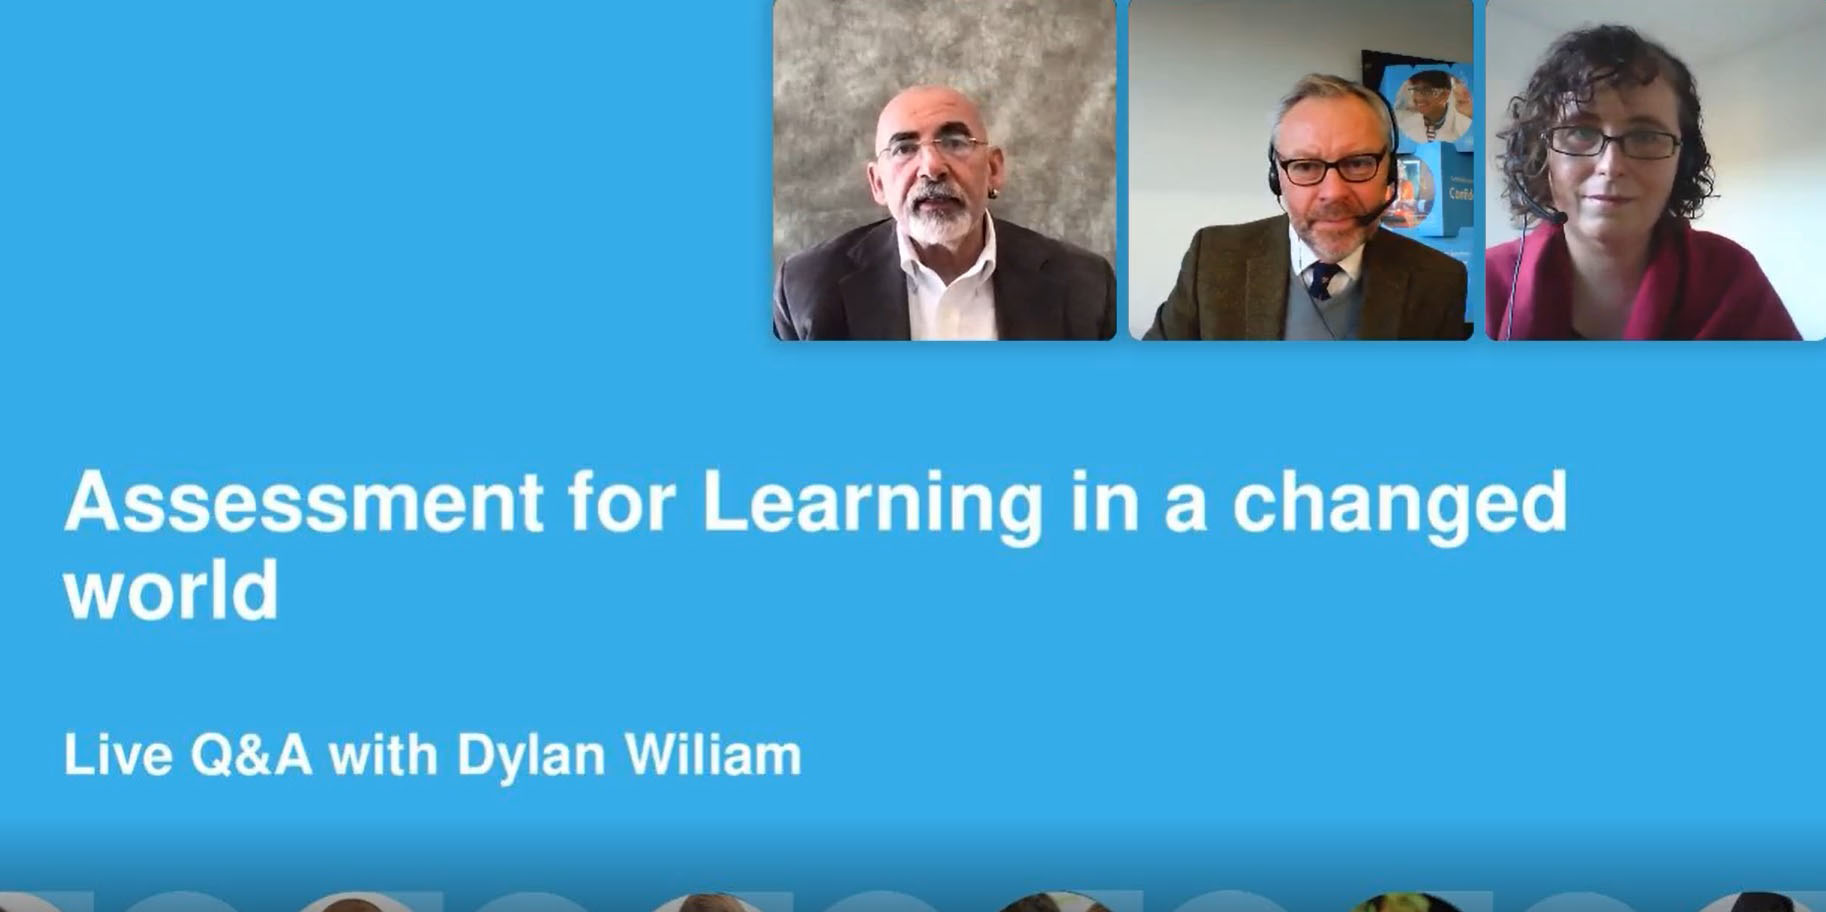 Assessment for Learning in a a changed world